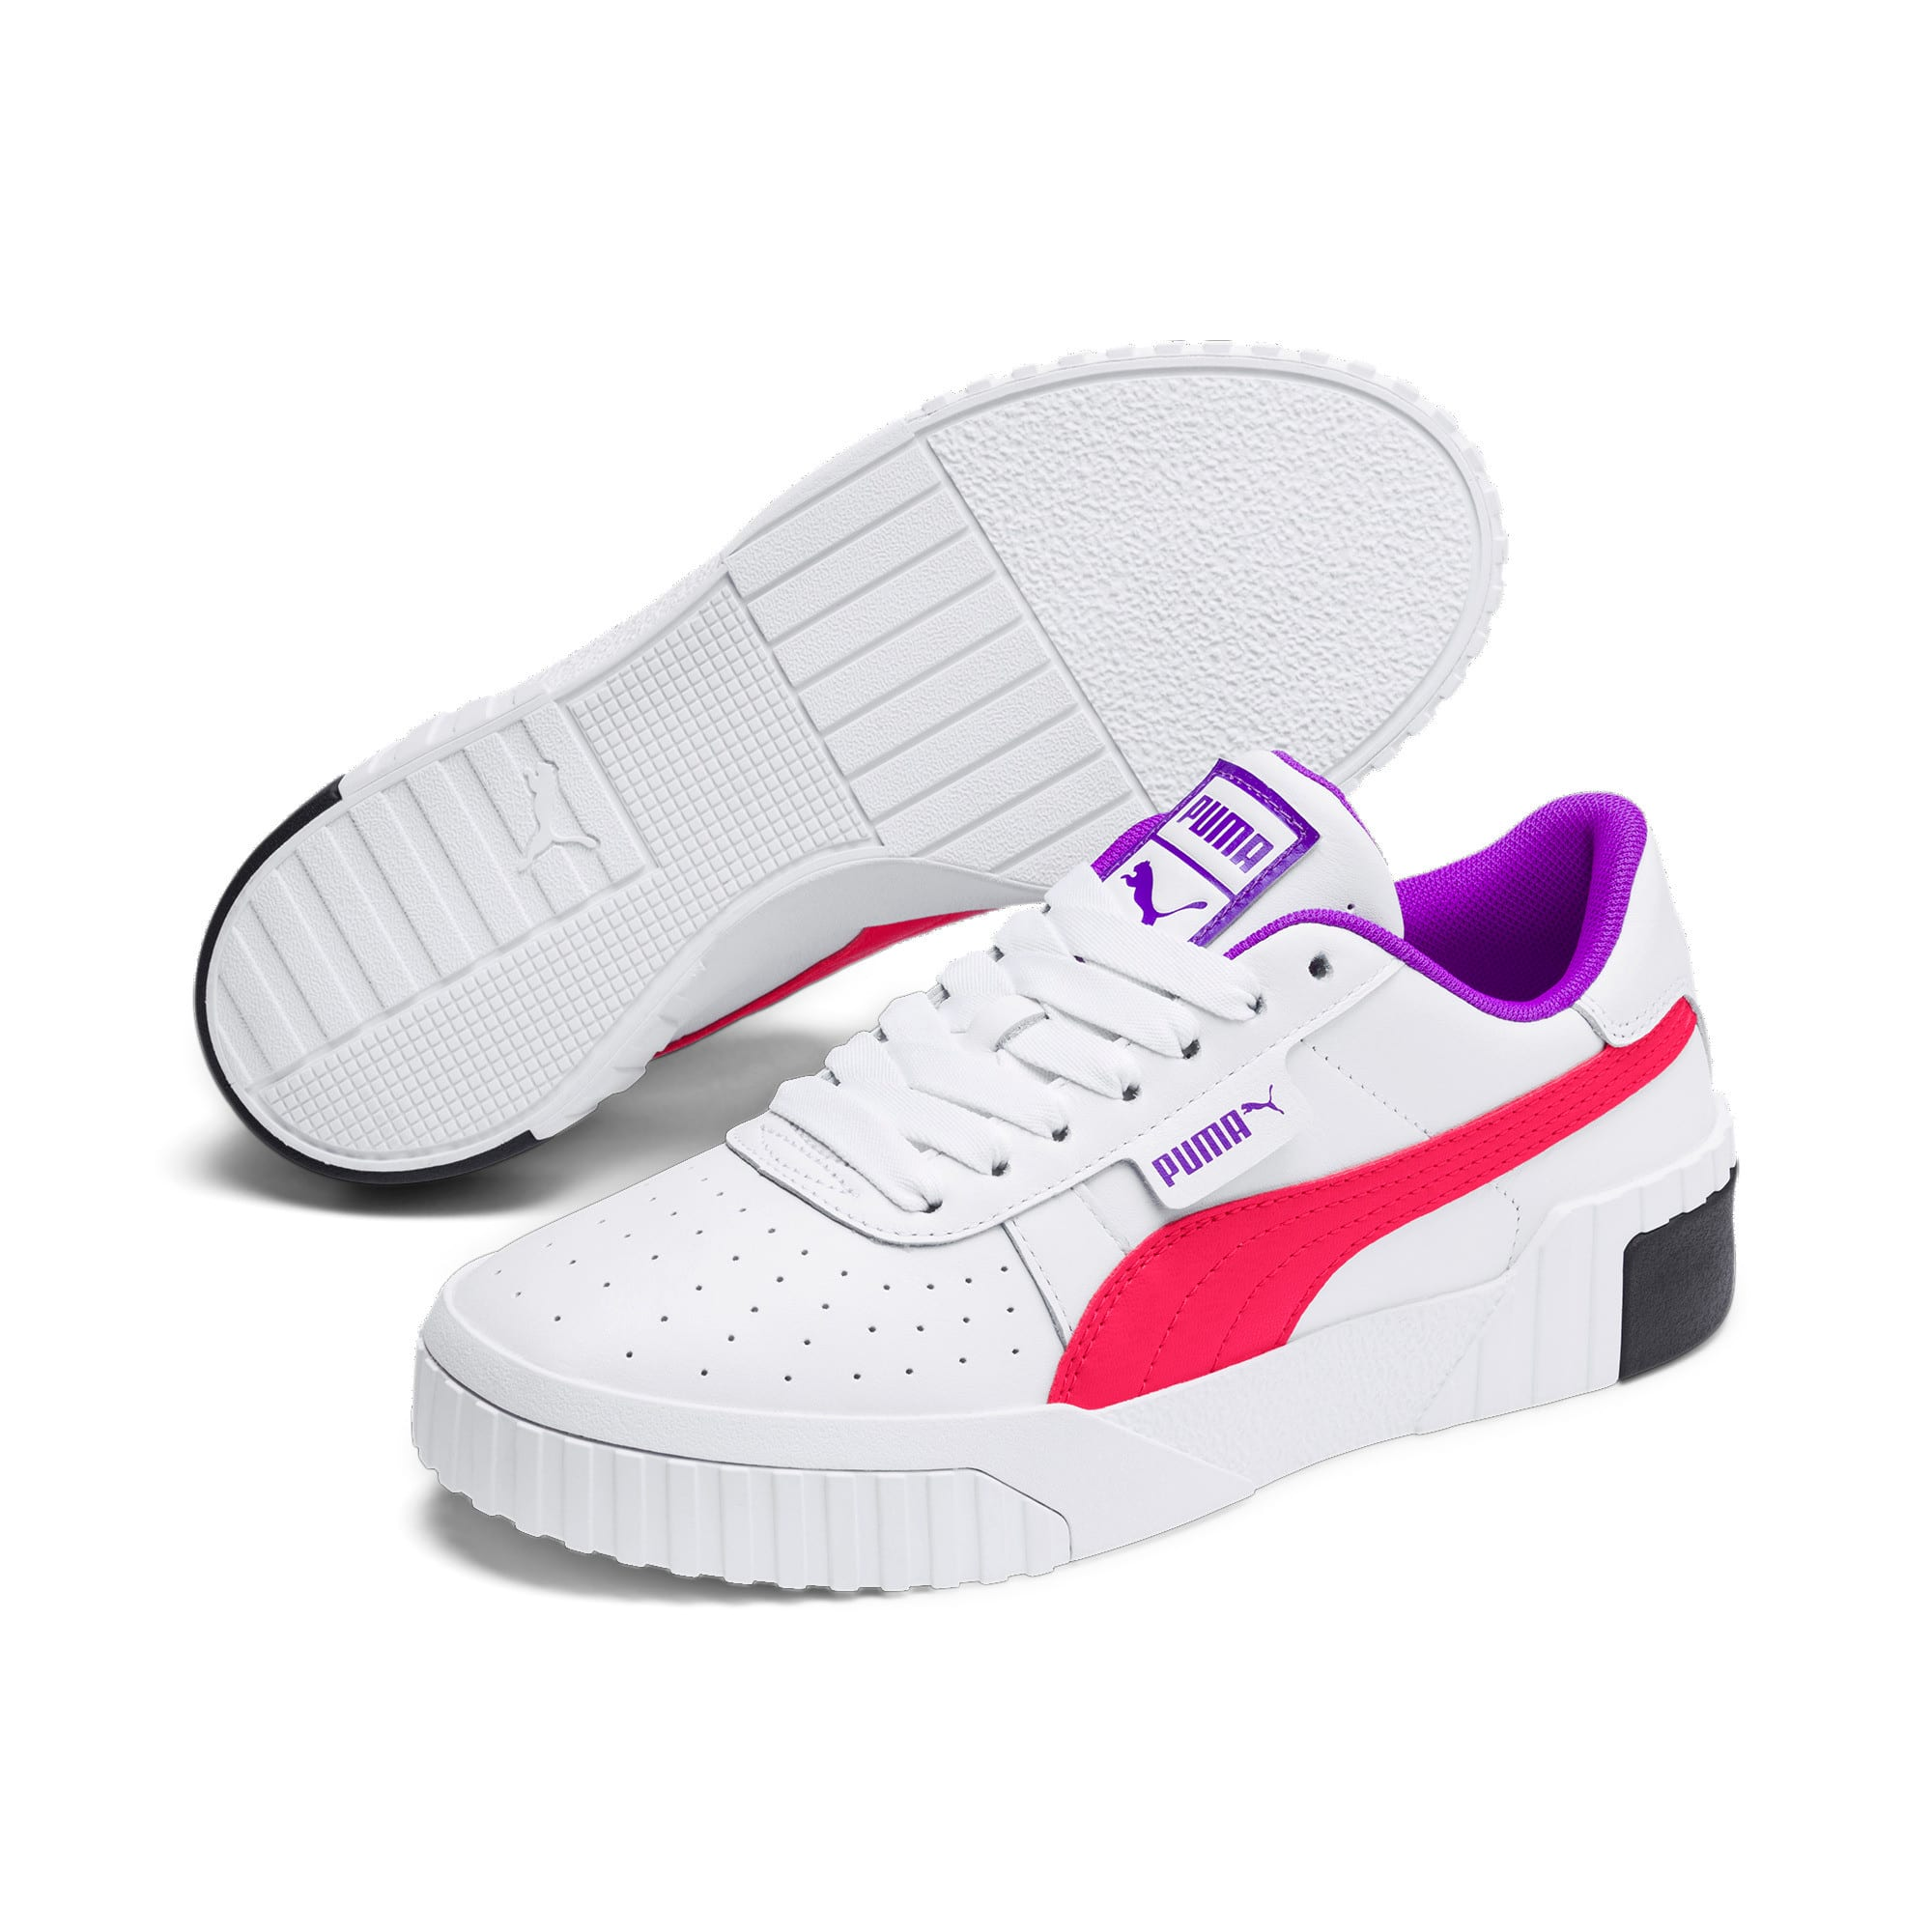 Thumbnail 2 of Cali Chase Women's Training Shoes, Puma White-Nrgy Rose, medium